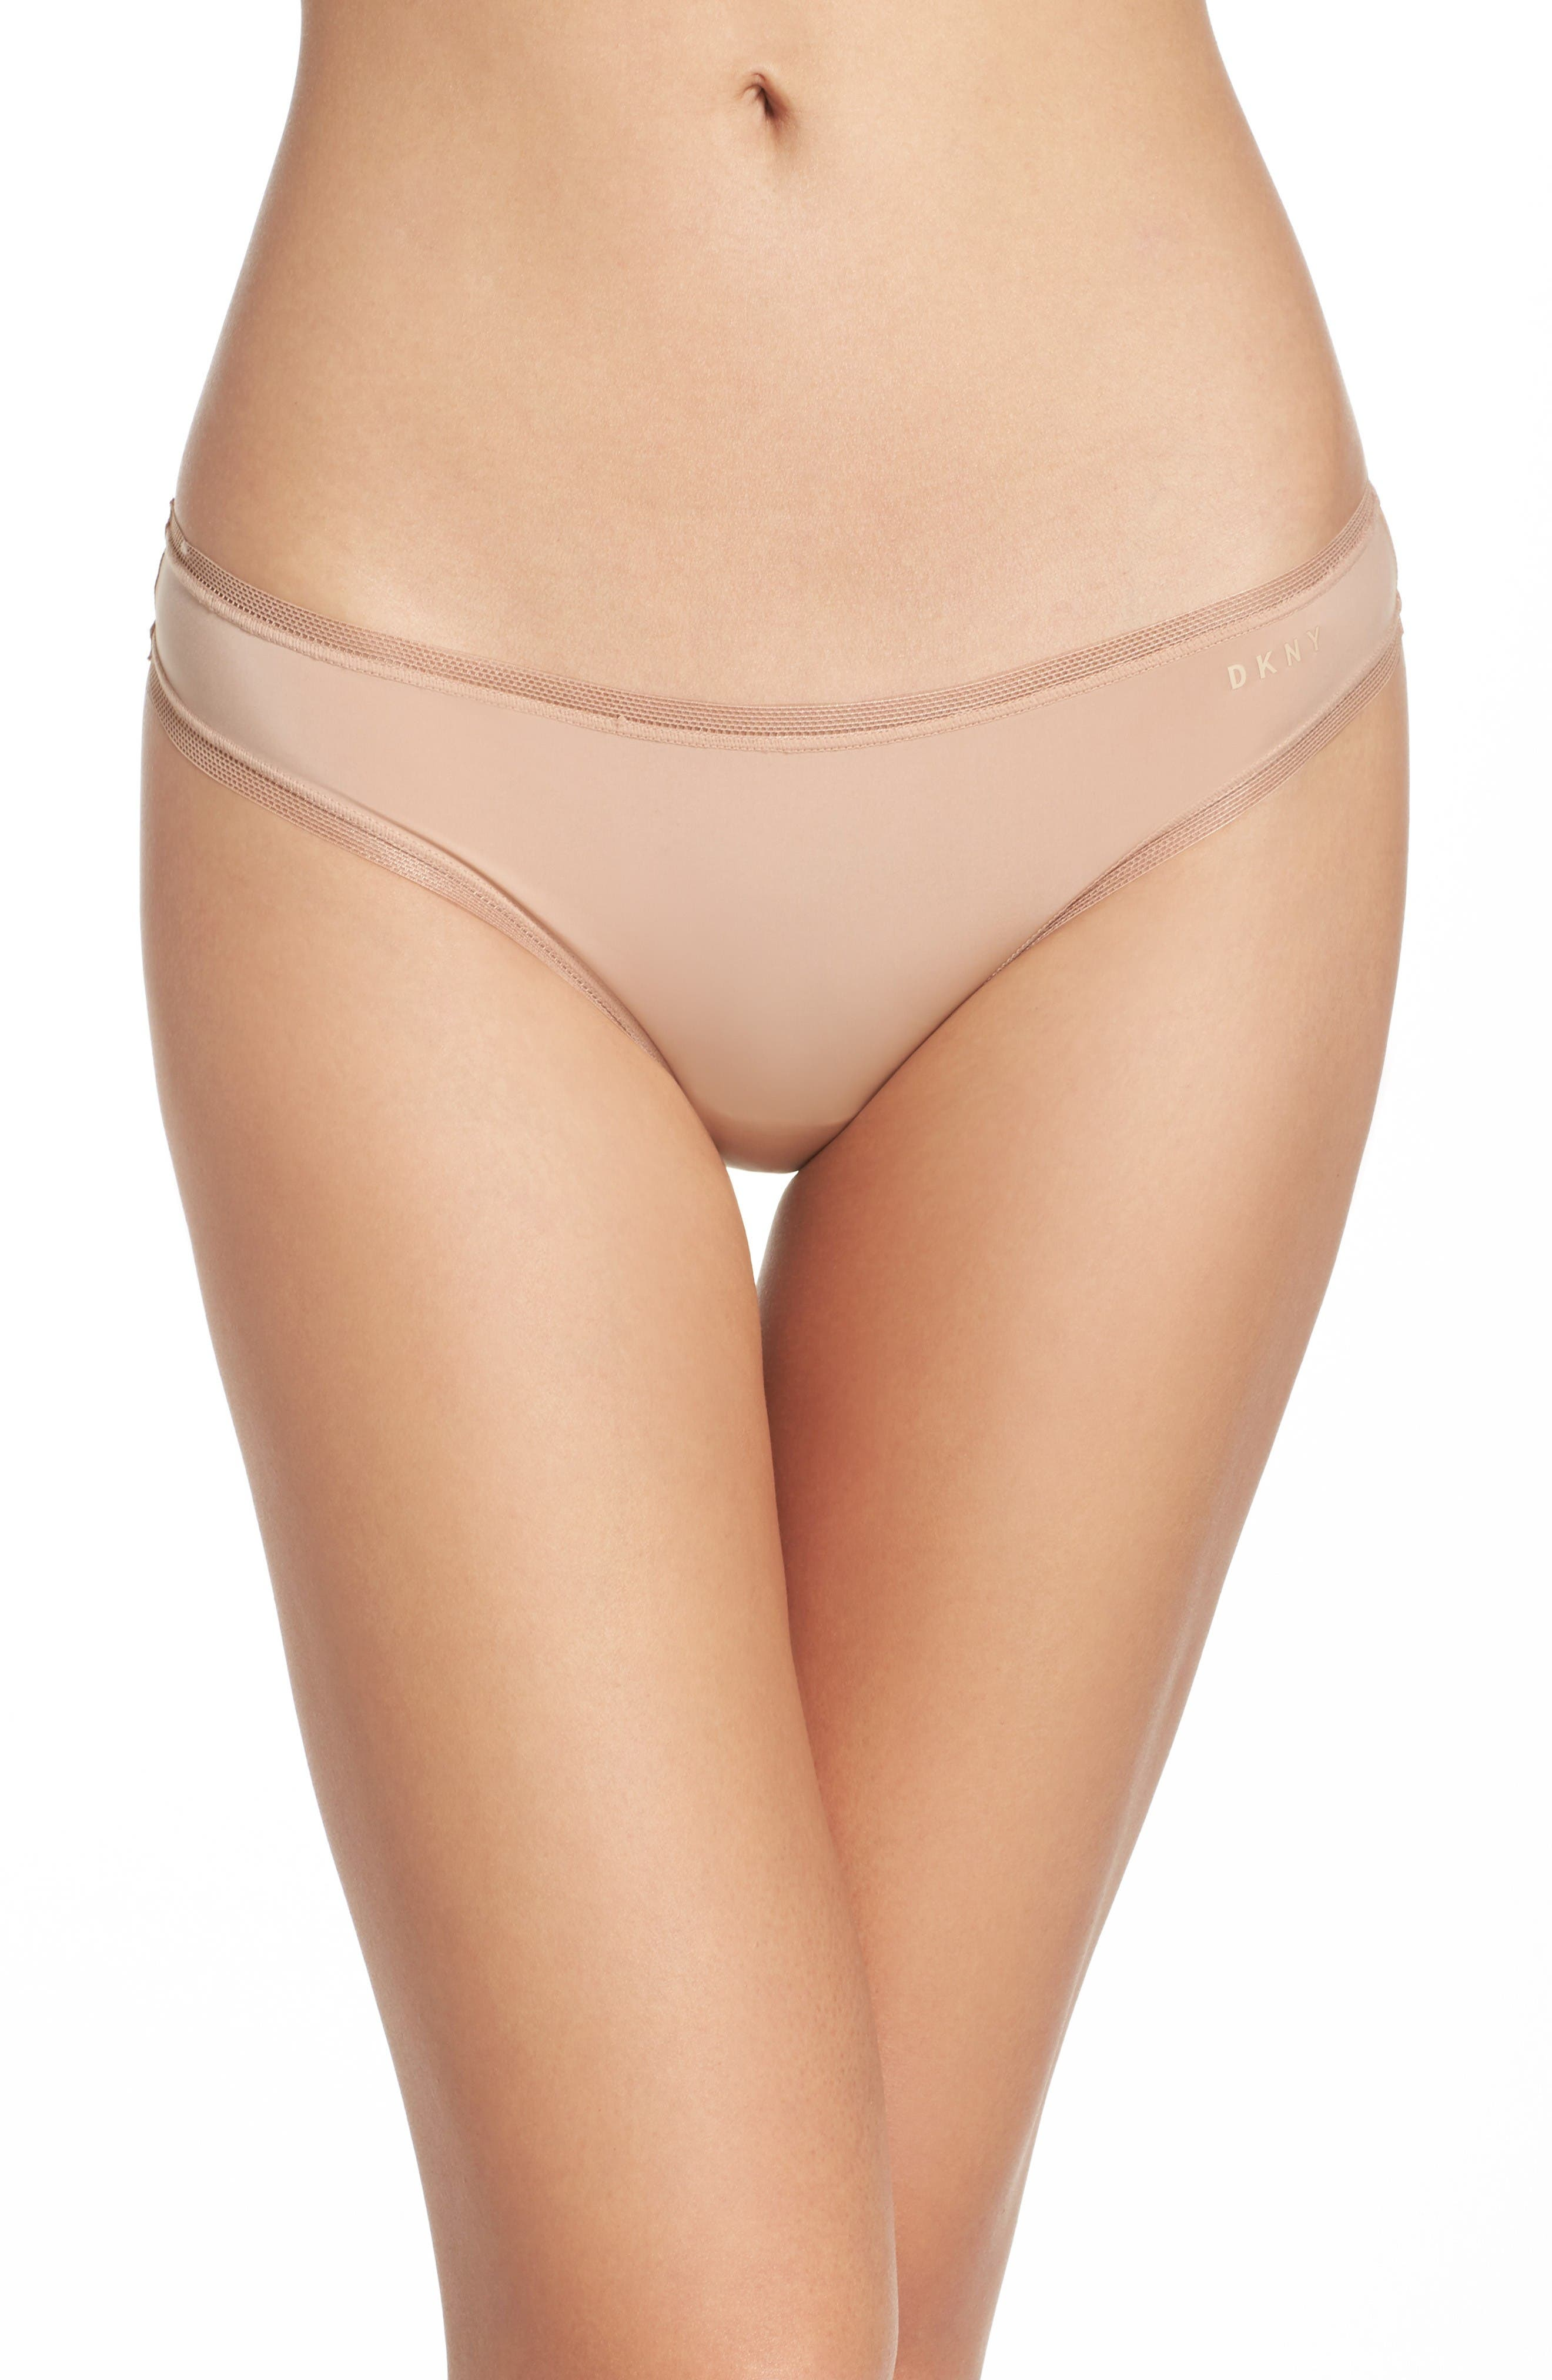 DKNY Low Rise Thong (4 for $30)